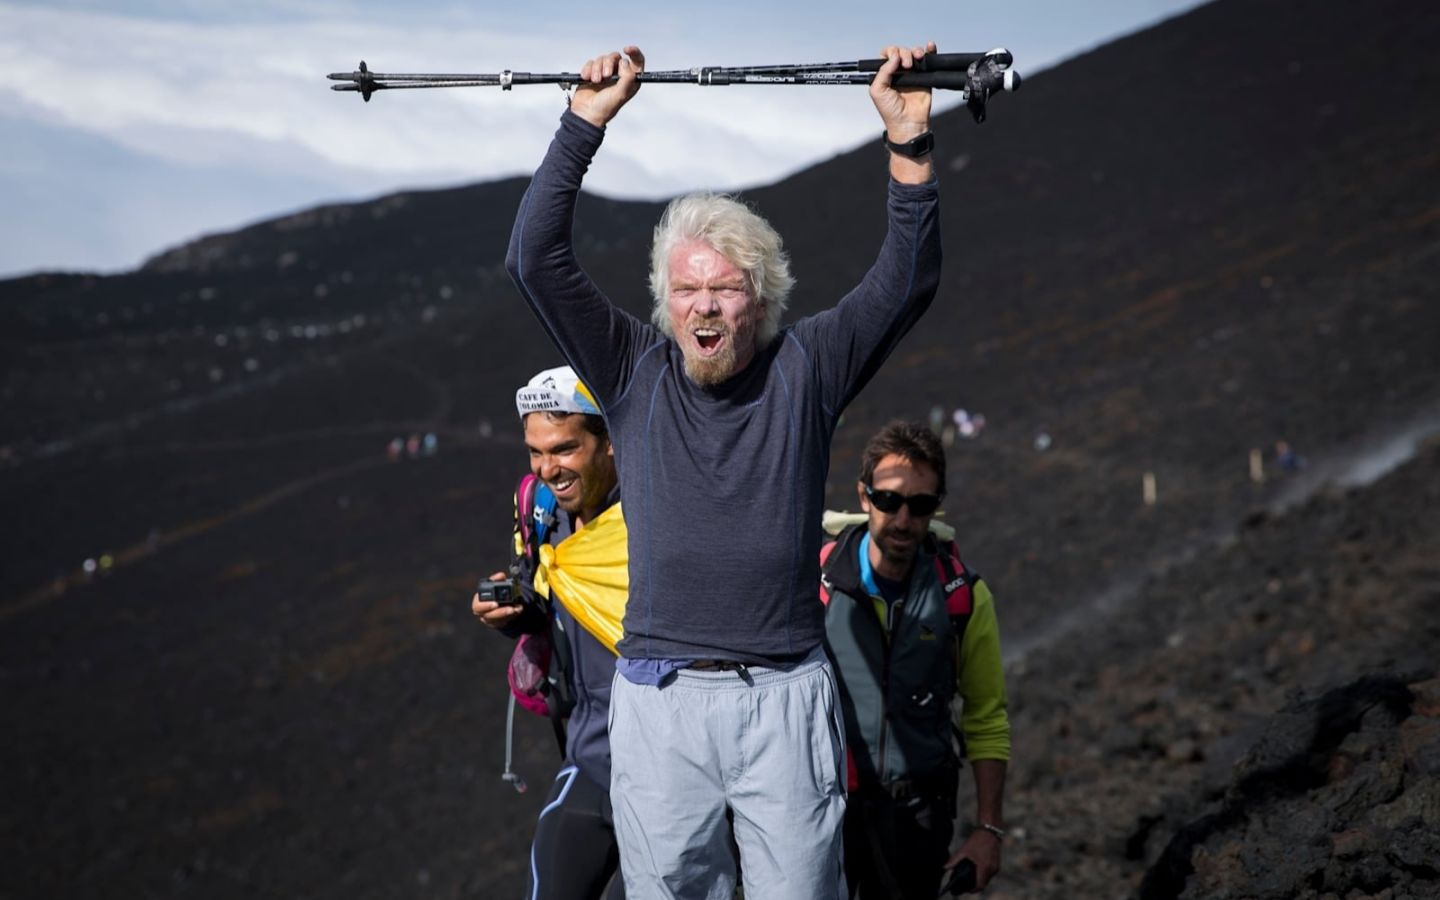 Richard Branson celebrating getting to the top of a mountain